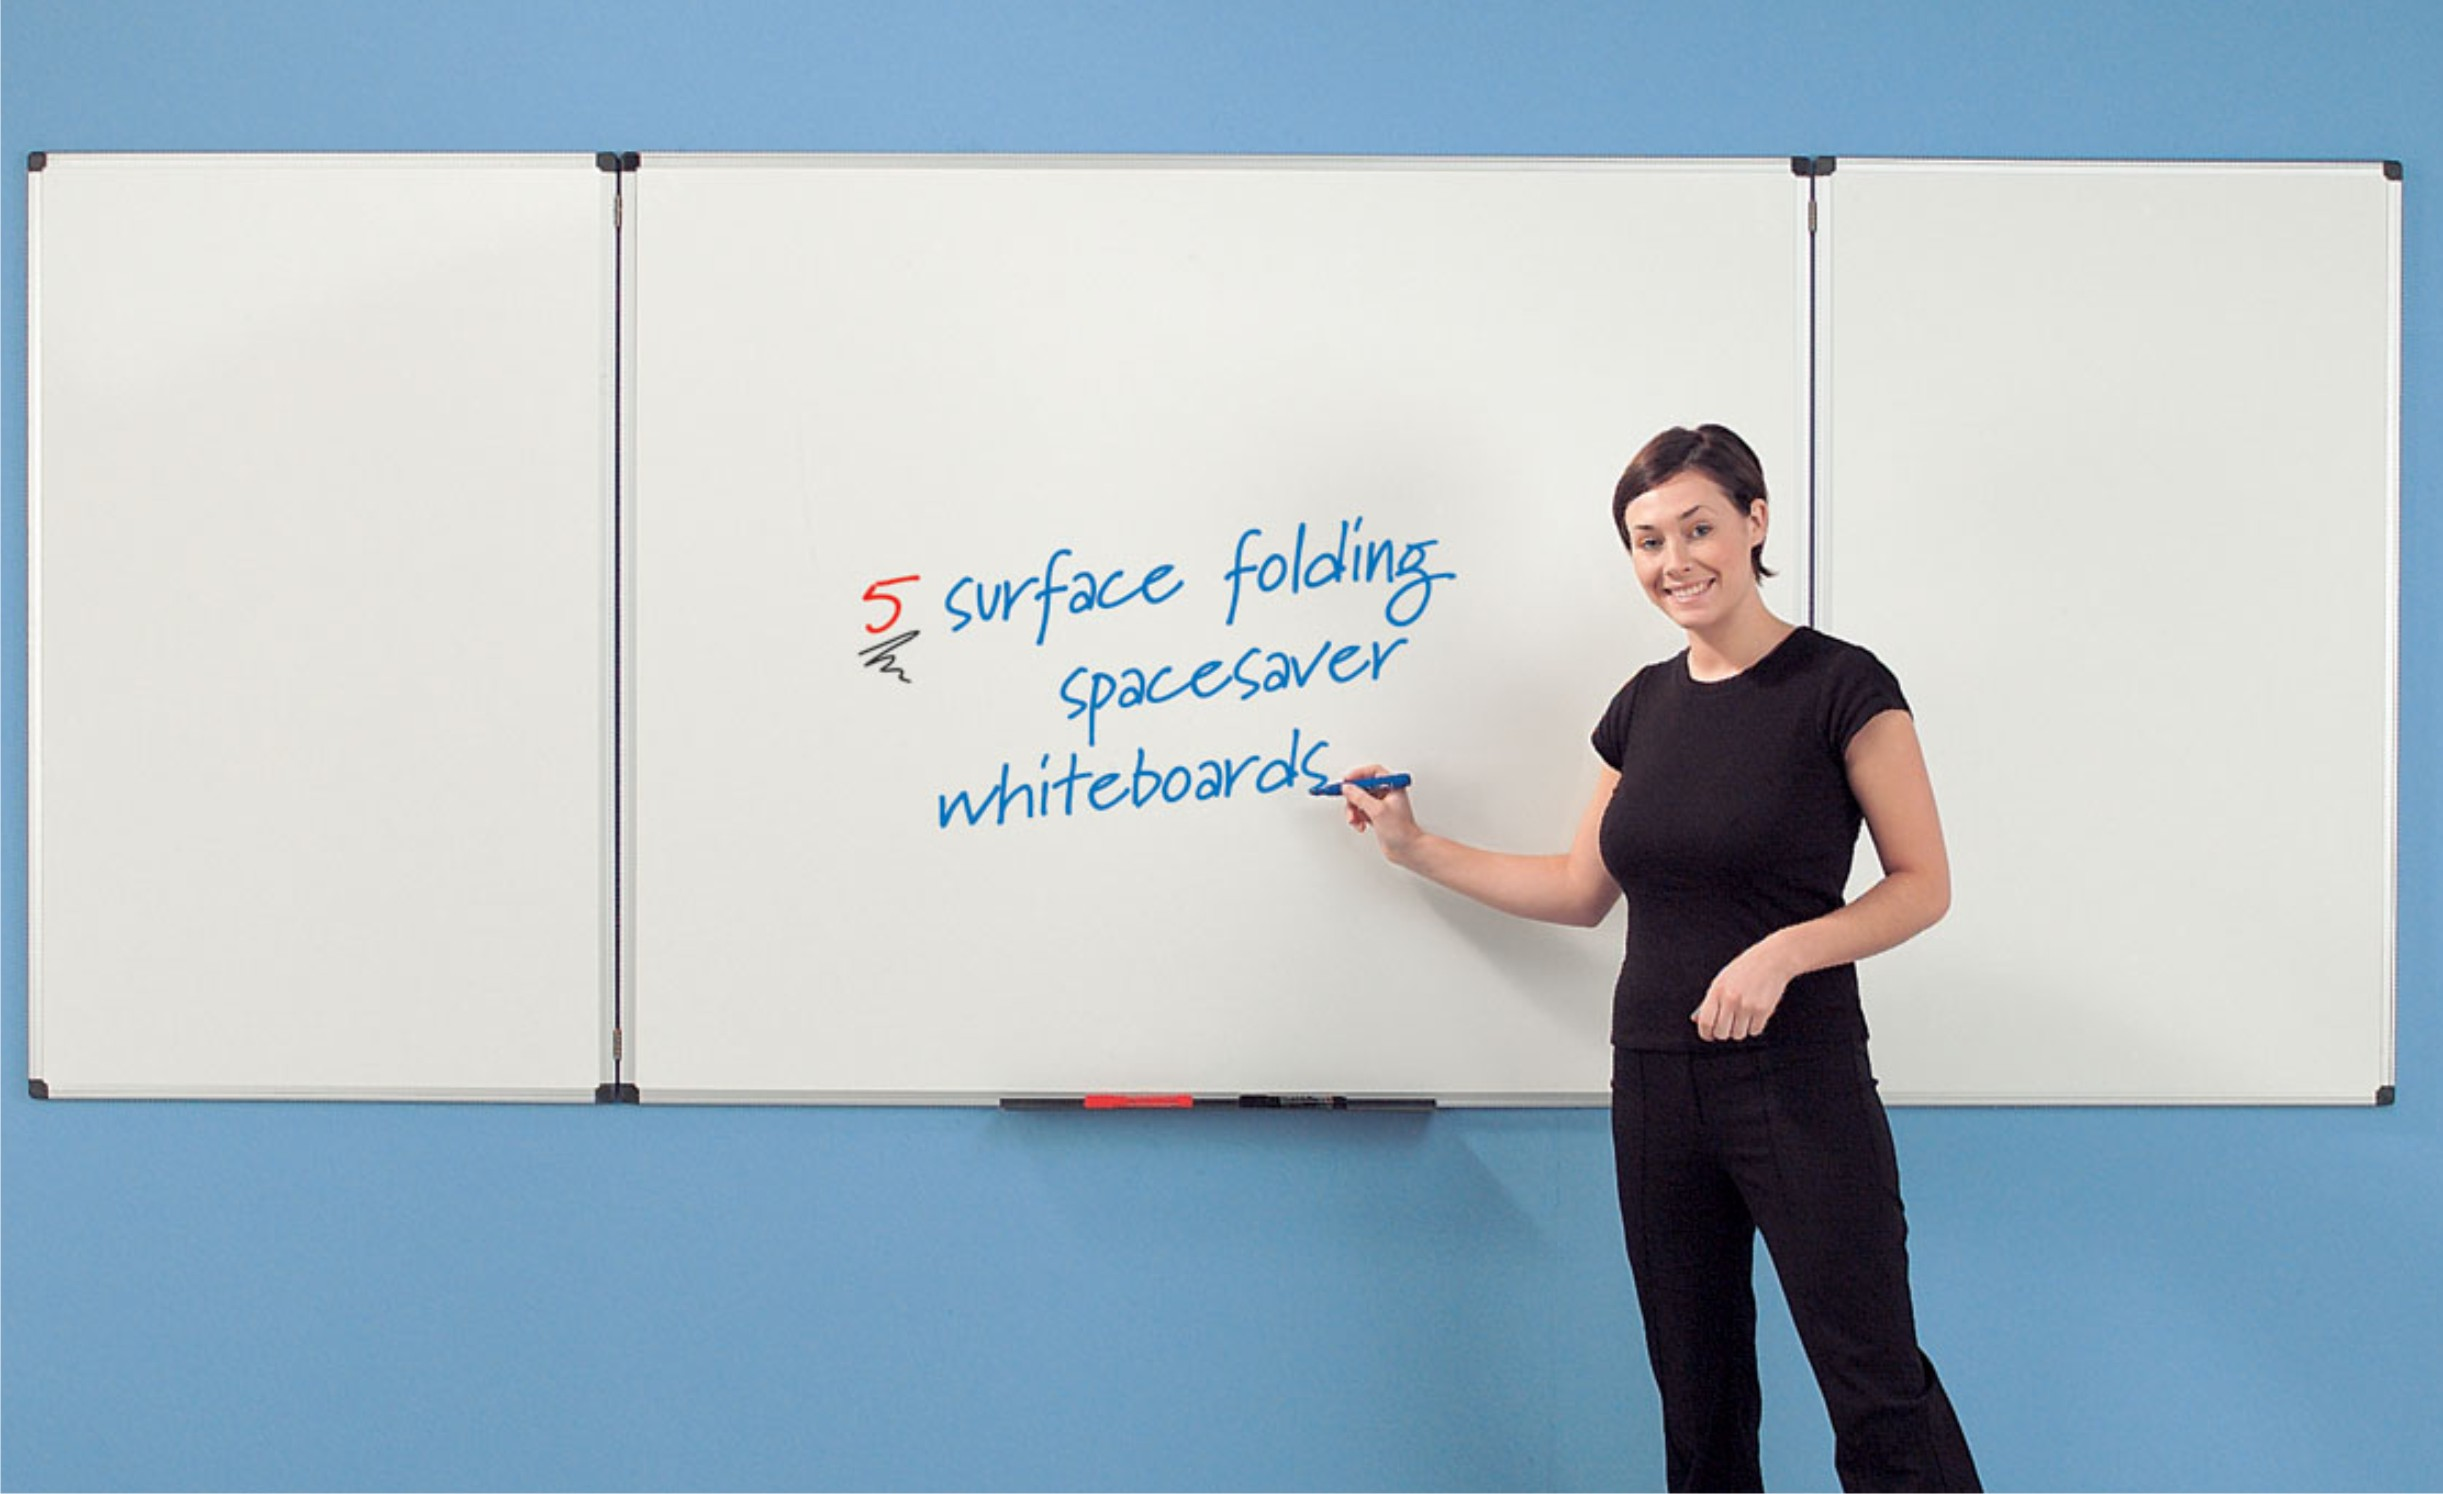 confidential whiteboards